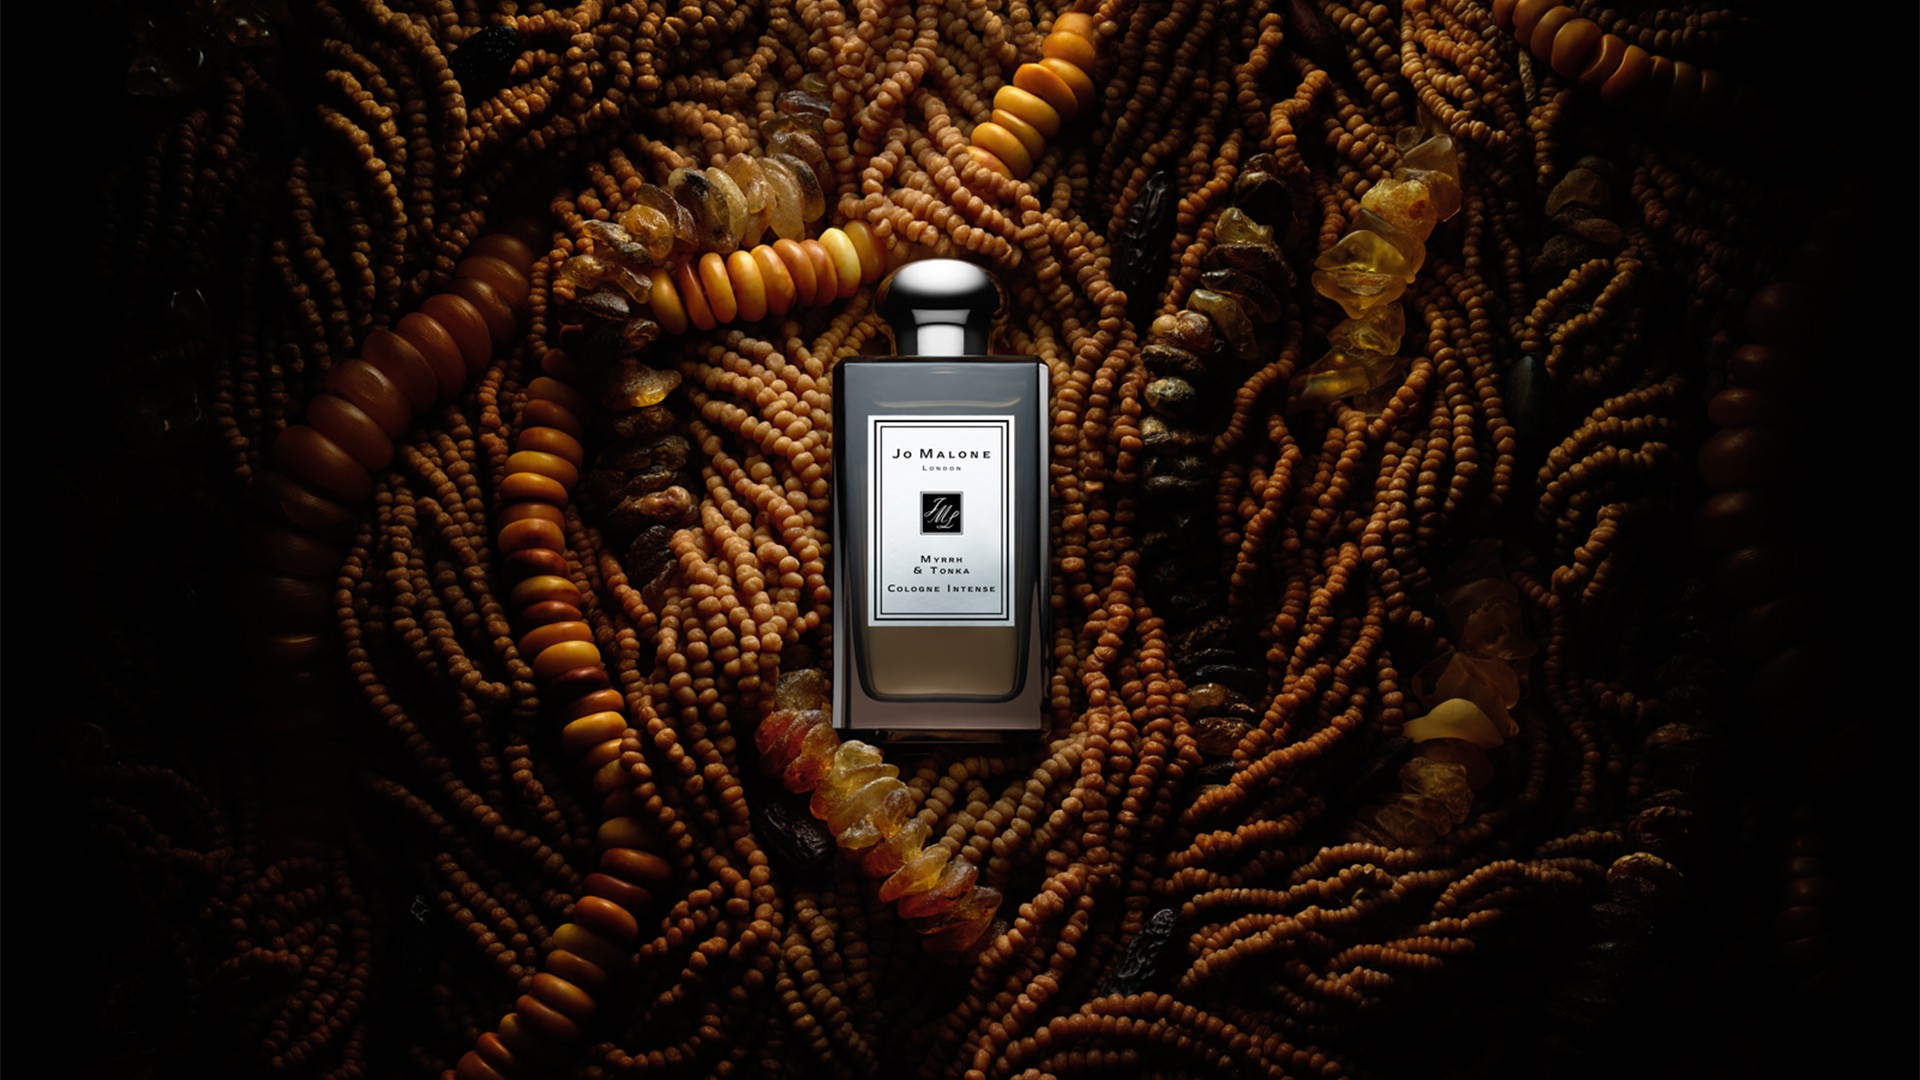 Jo Malone Myrrh & Tonka men's fragrance